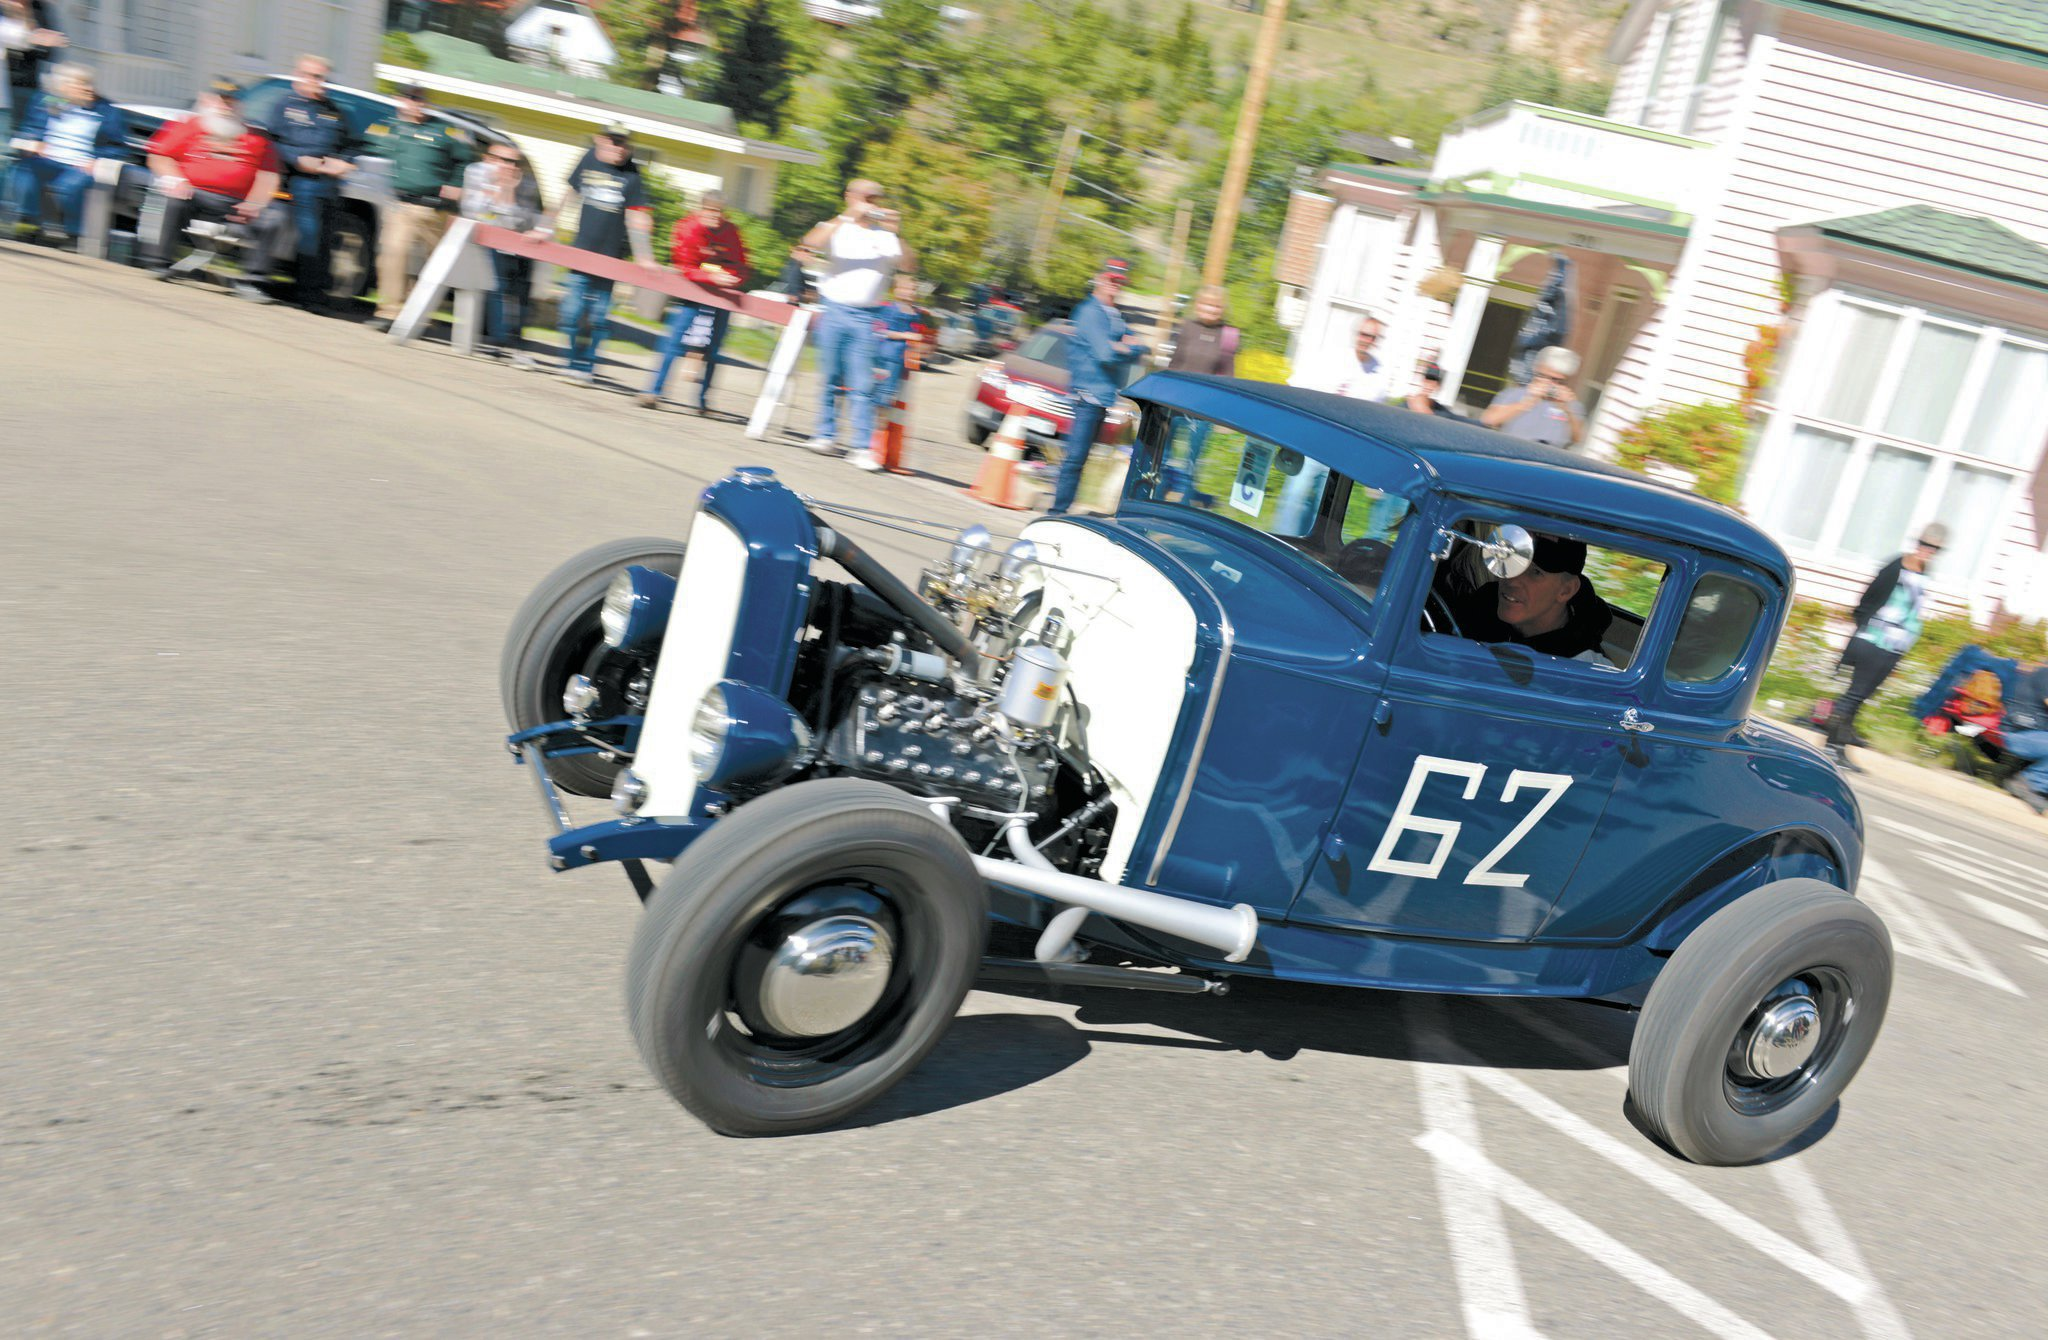 Cutting this corner tight is Kevin Tutor and his '31 Model A highboy. It's got a 3-inch chop, a '32 frame with split wishbones, and a 4-inch dropped axle. Powering this stunner is a '59 flathead with a Thickstun PM7 manifold, topped by a pair of Stromberg carbs.